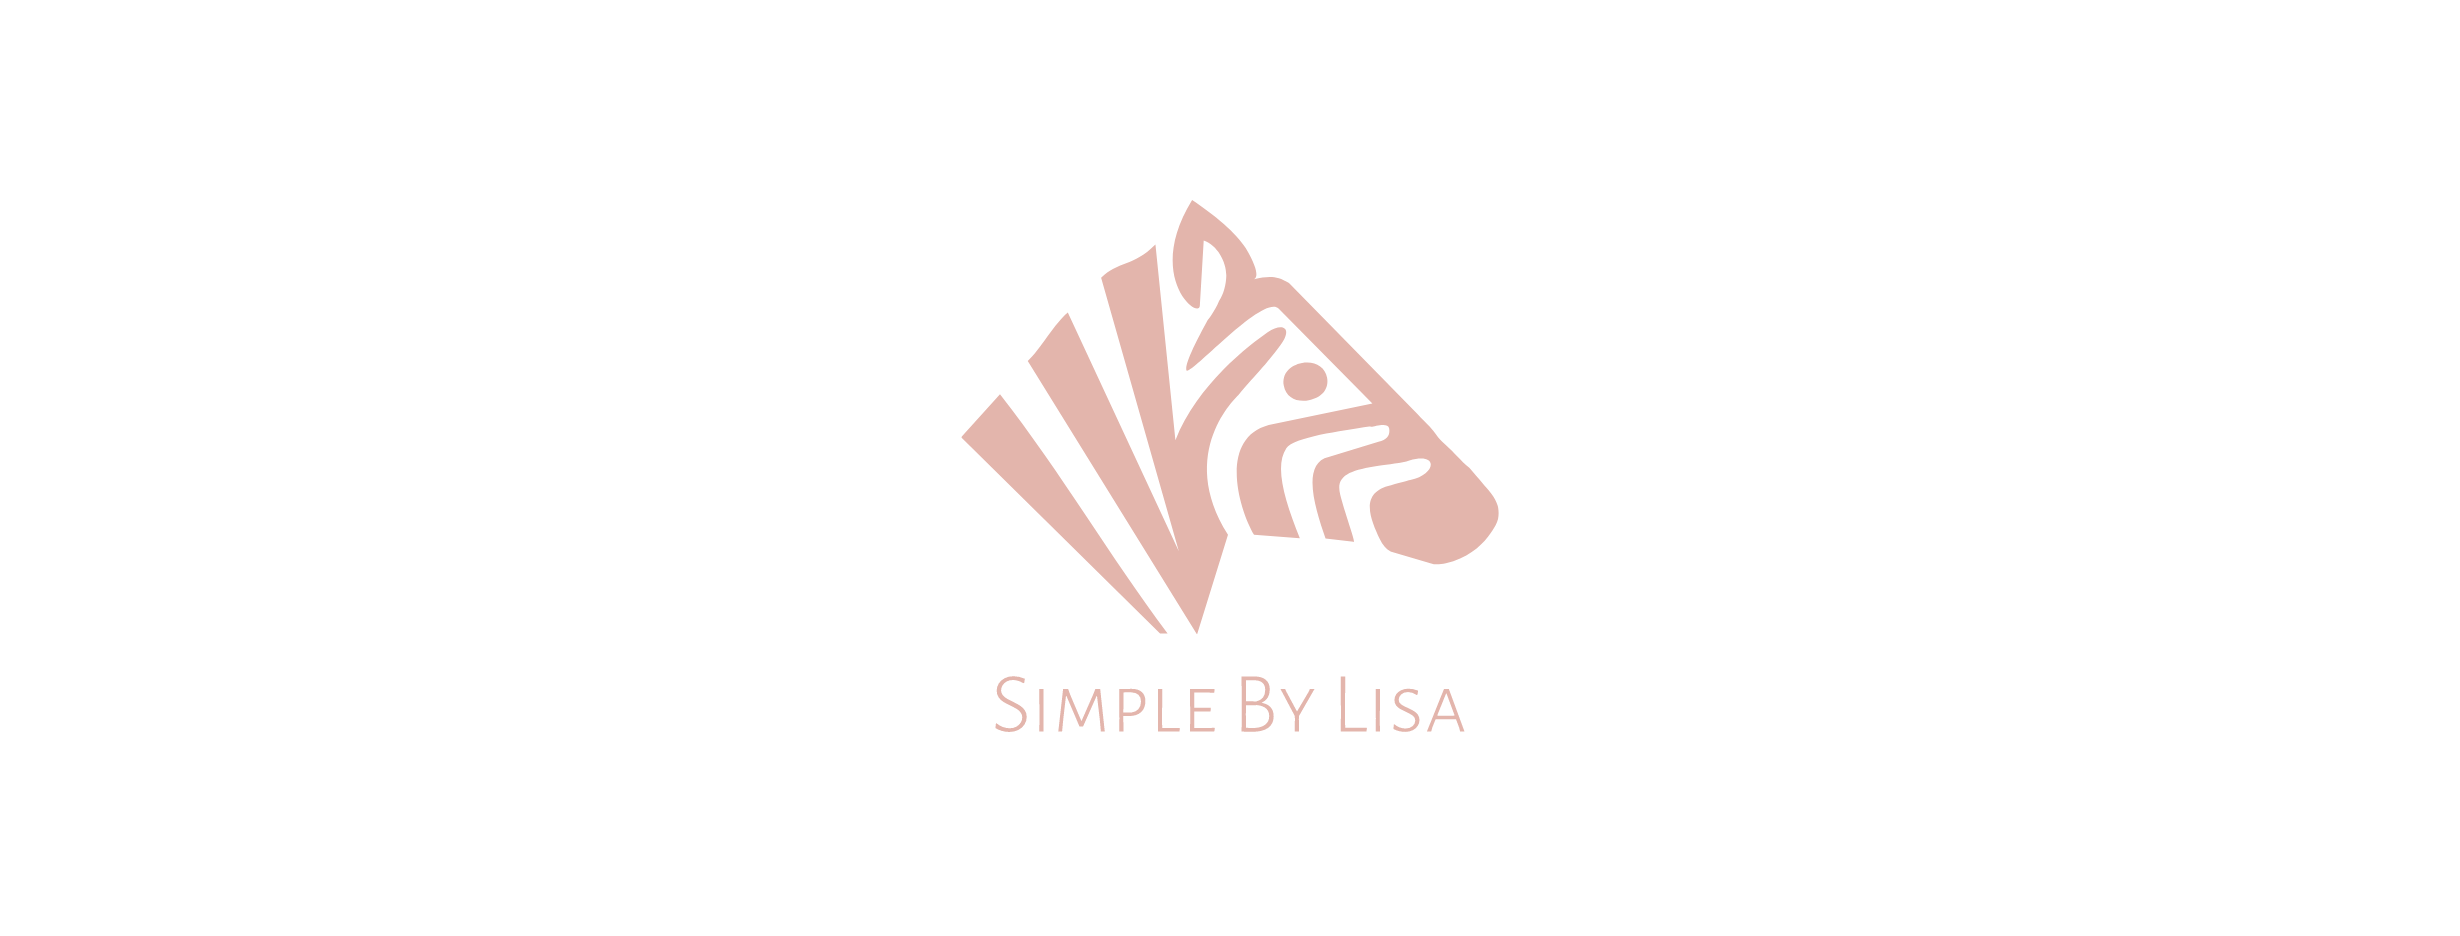 Simple By Lisa